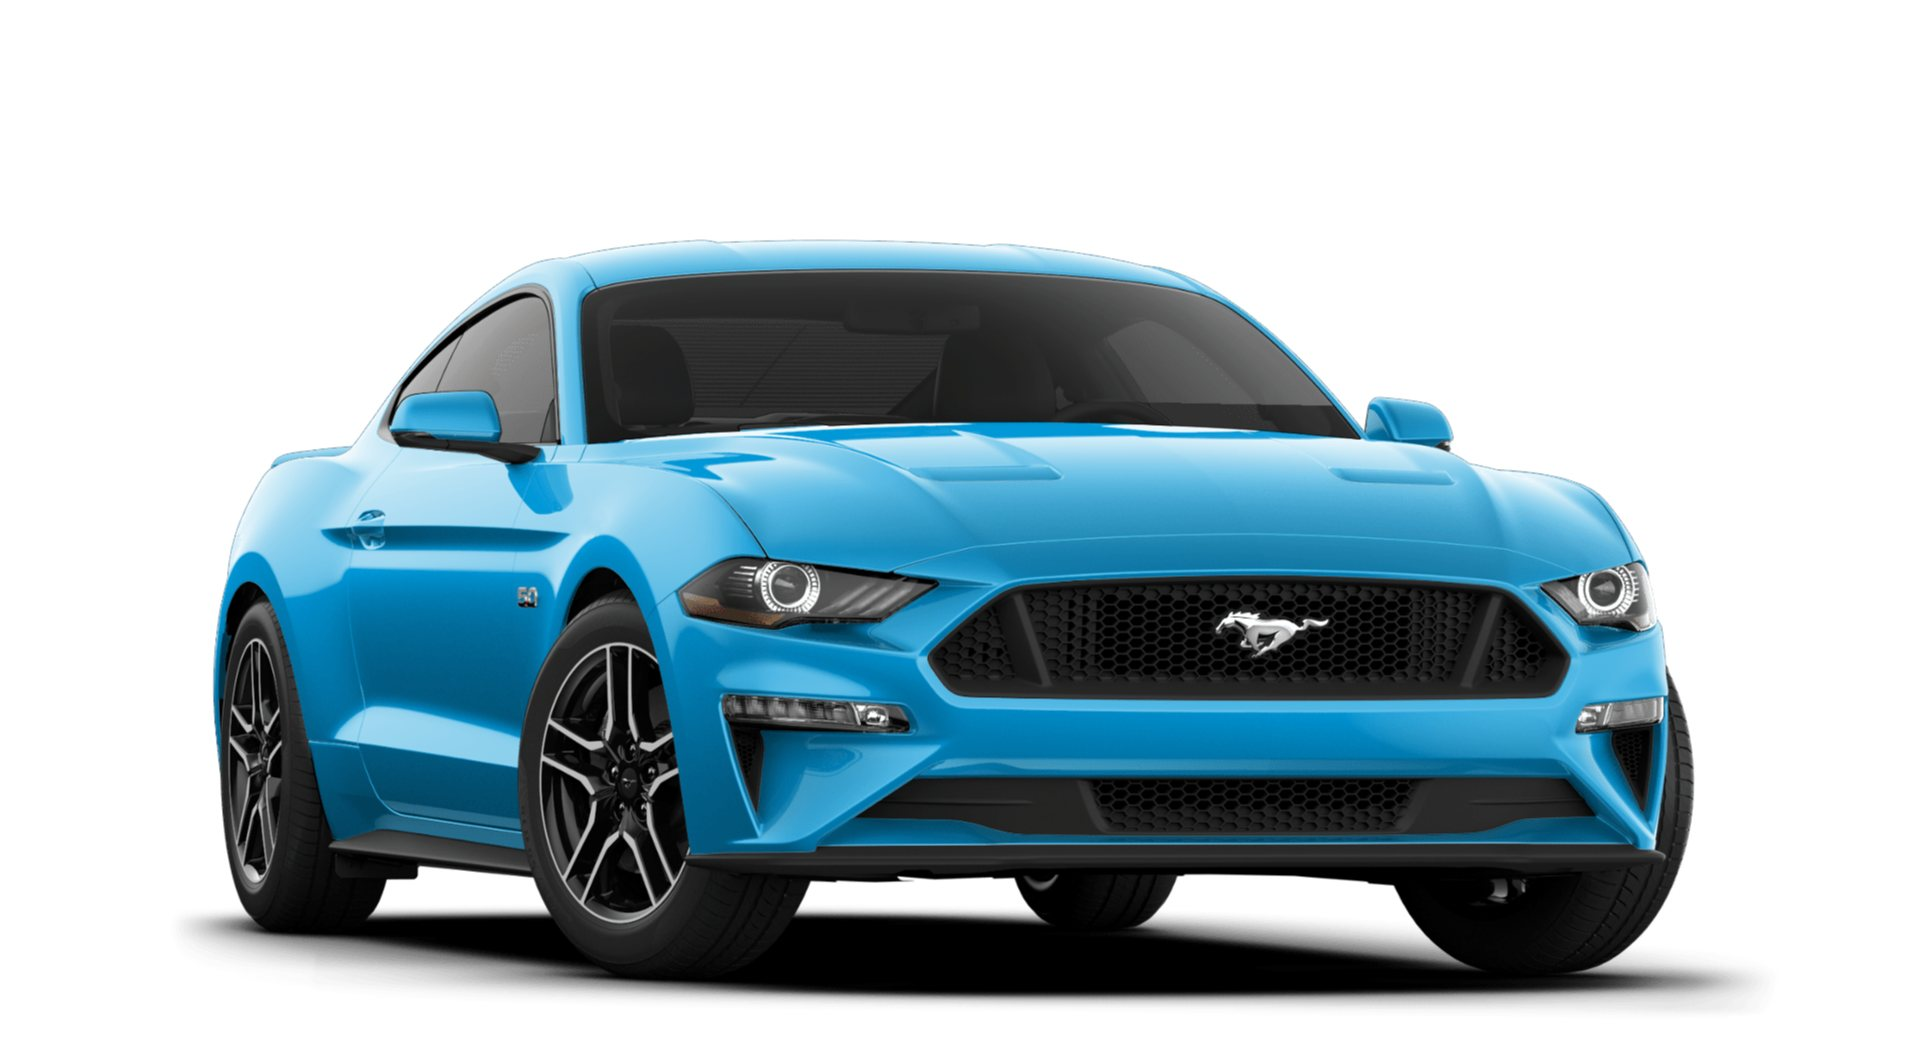 2020 Ford Mustang Velocity Blue